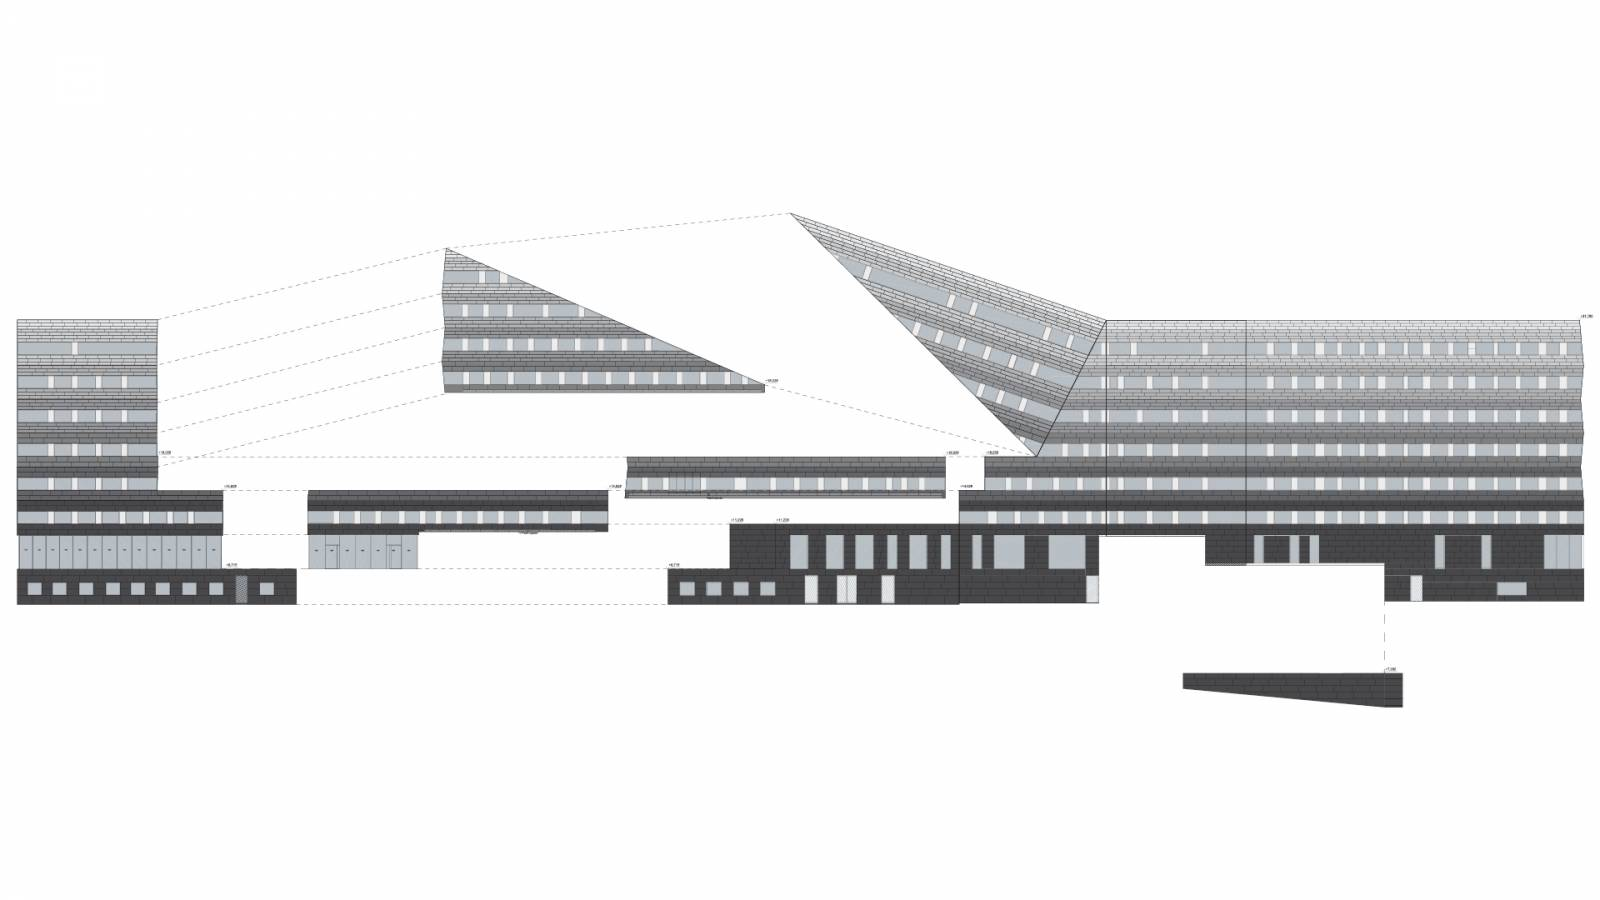 FACADE UNWRAPPED - Aviation Authority HQ - SPOL Architects